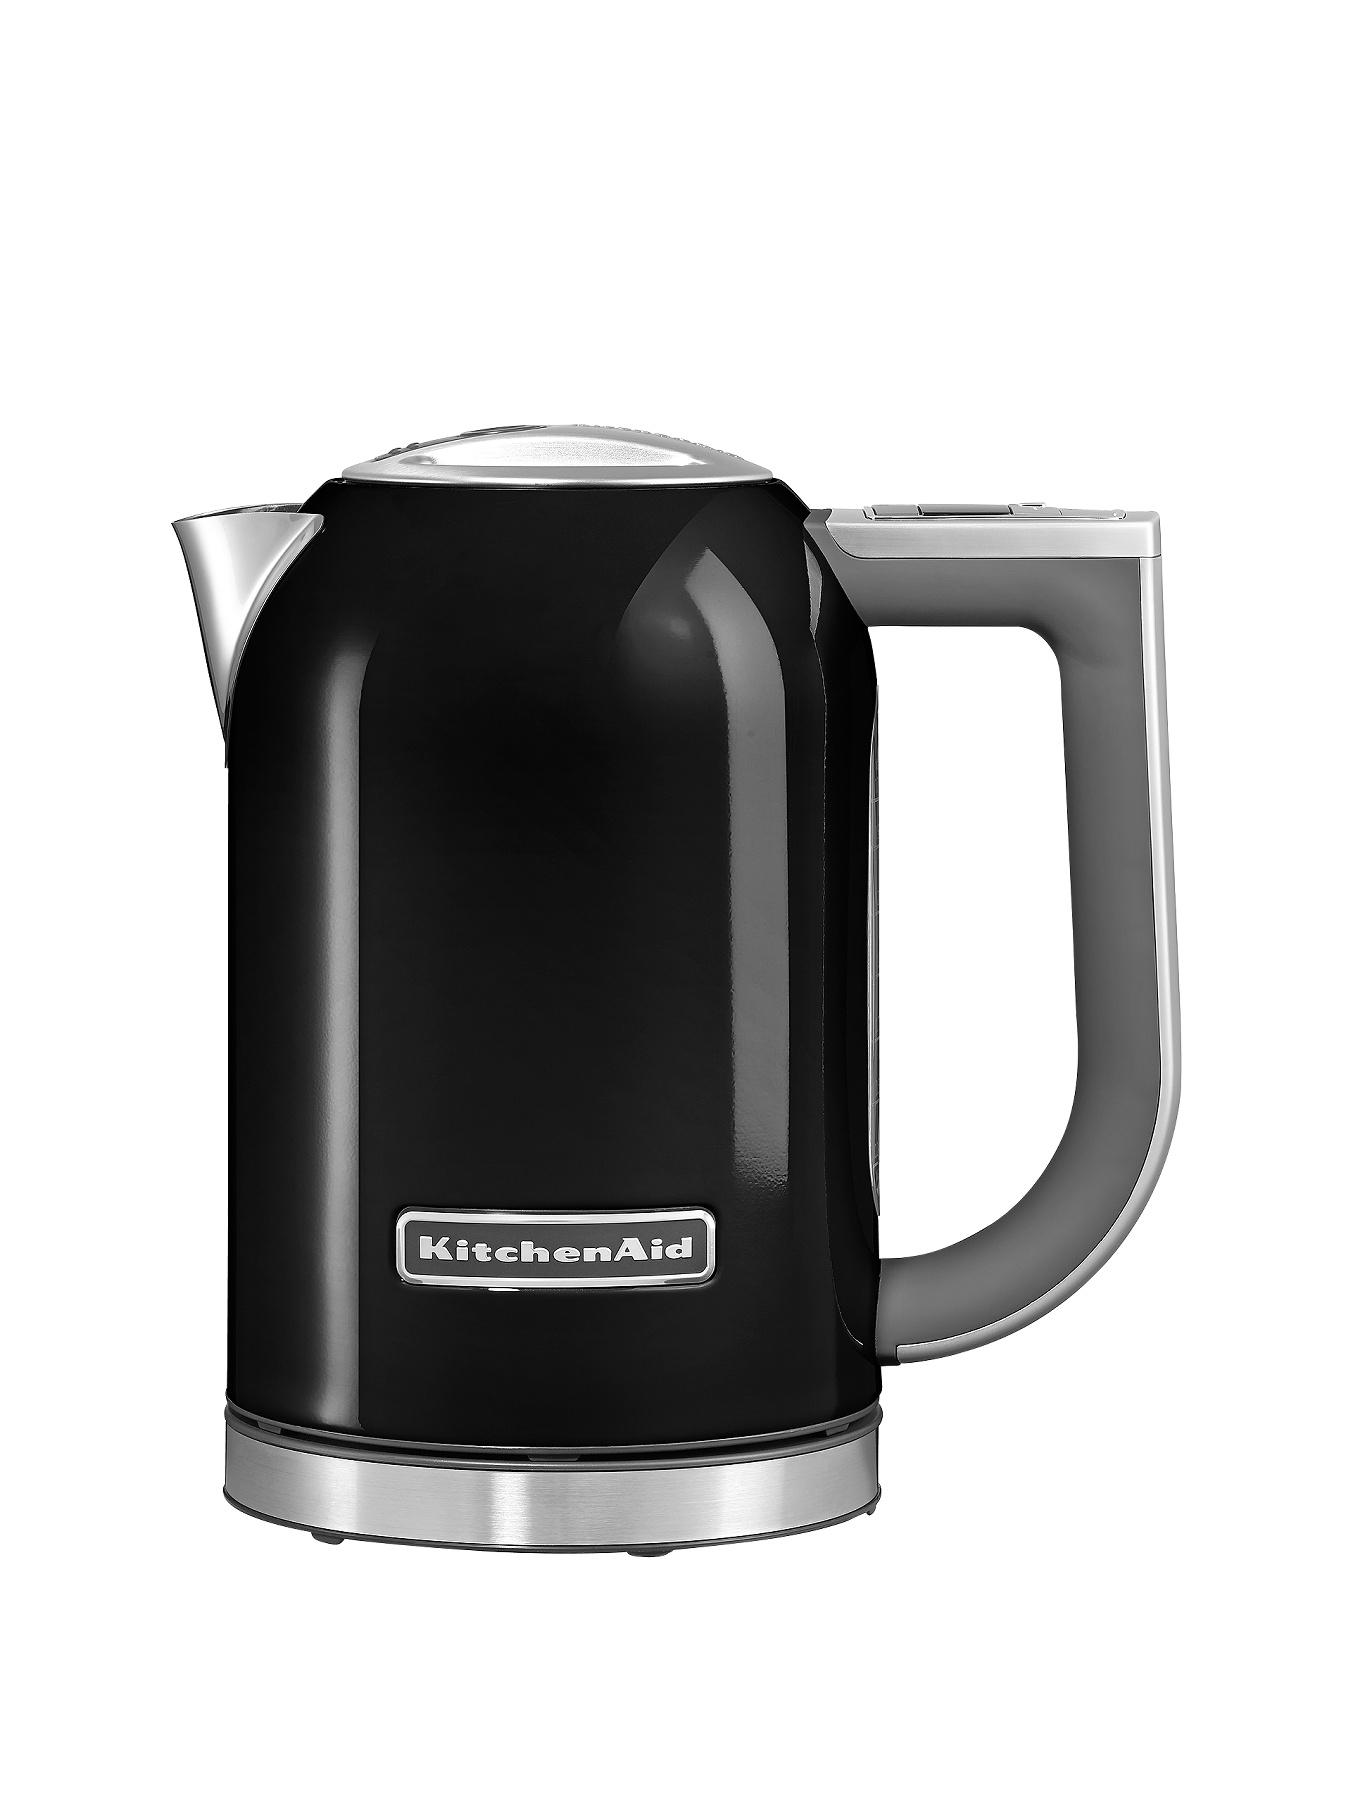 Cheap KitchenAid Kettles at findthebestpricescouk -> Kitchenaid Jug Kettle